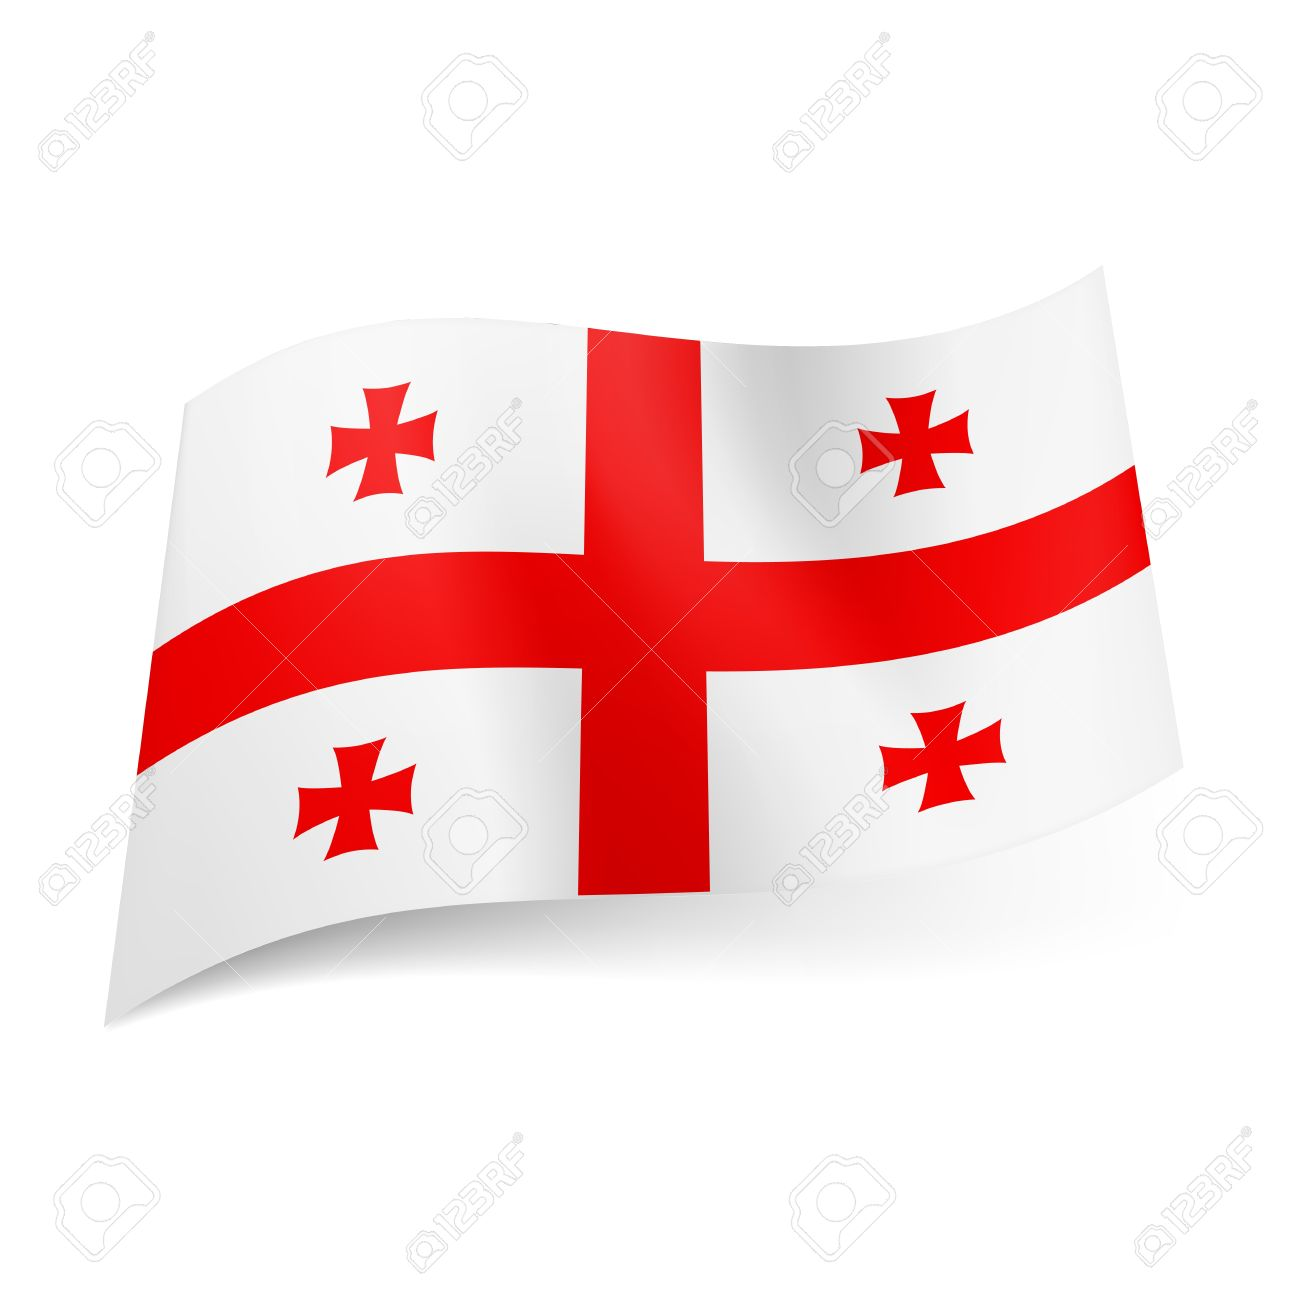 Red Cross Flag, Flag of Red Cross